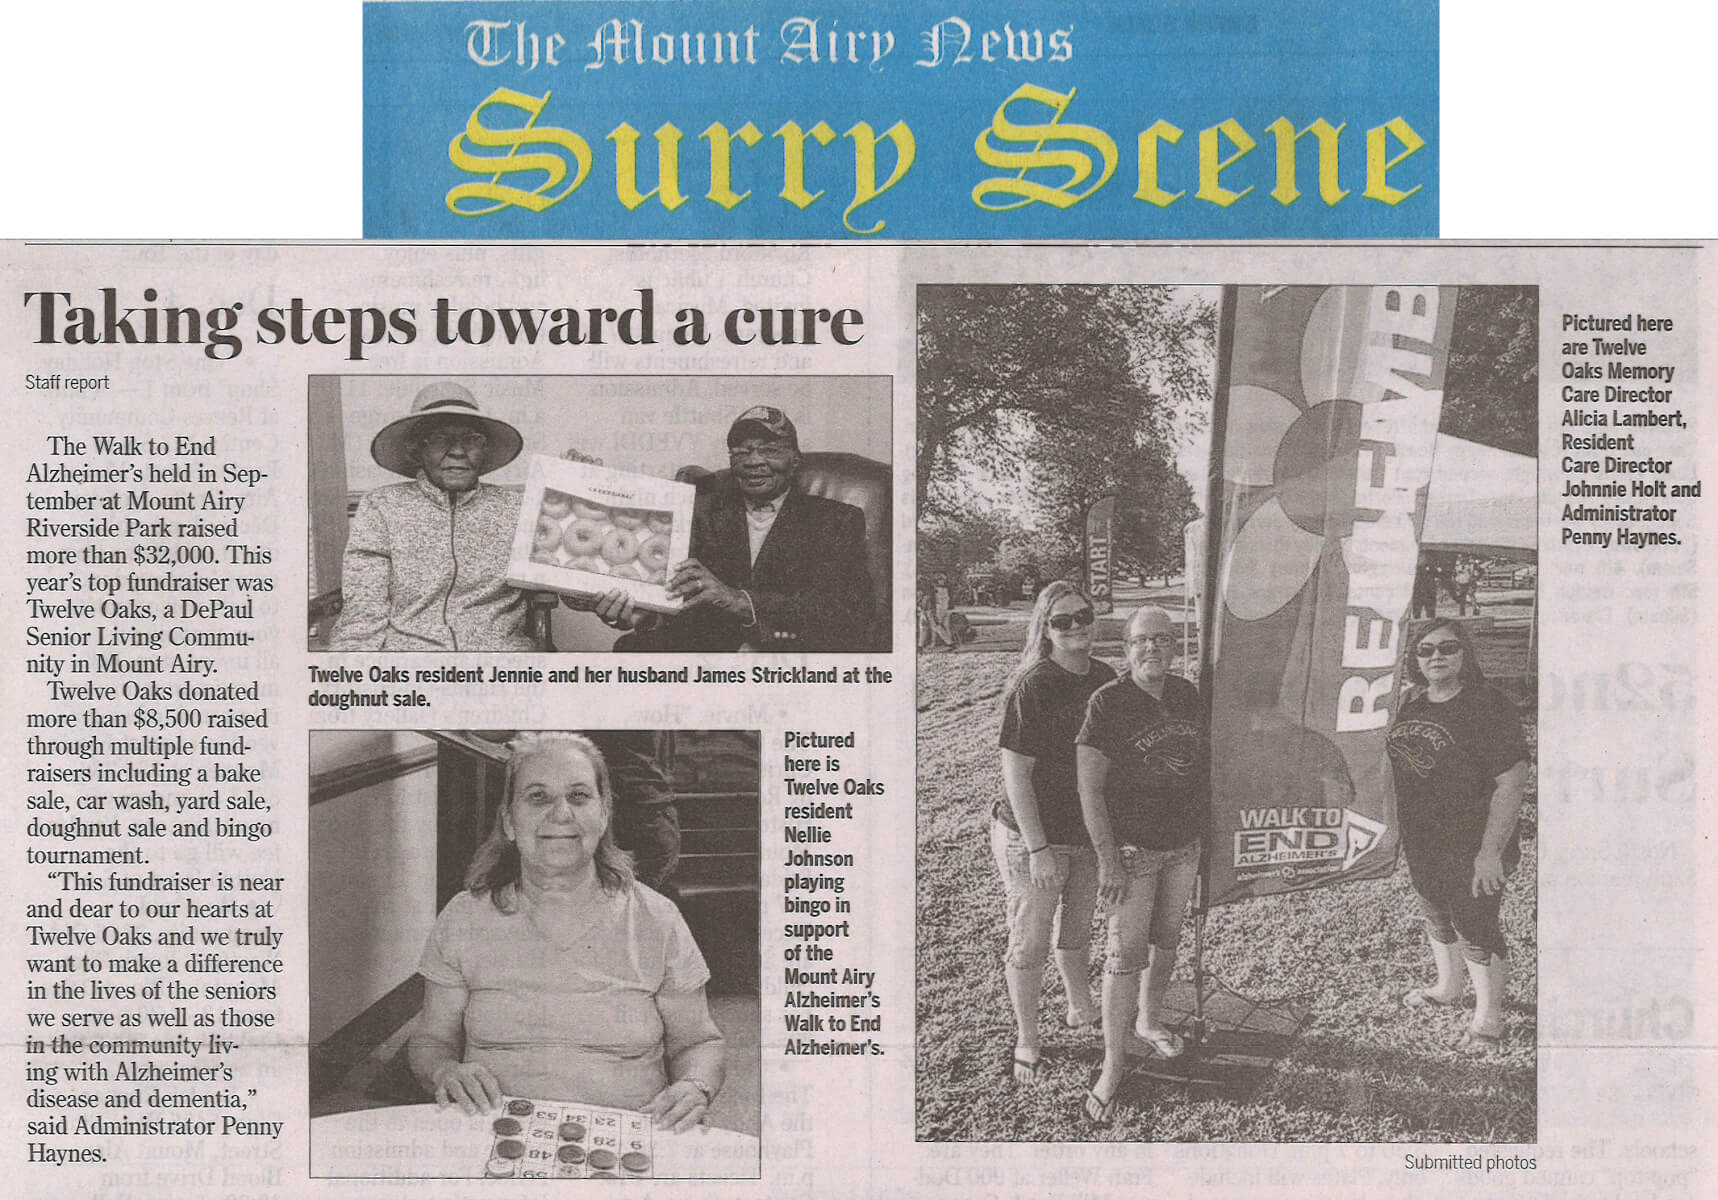 Twelve Oaks Residents walk to end Alzheimers December 1, 2016 story in the Mount Airy News